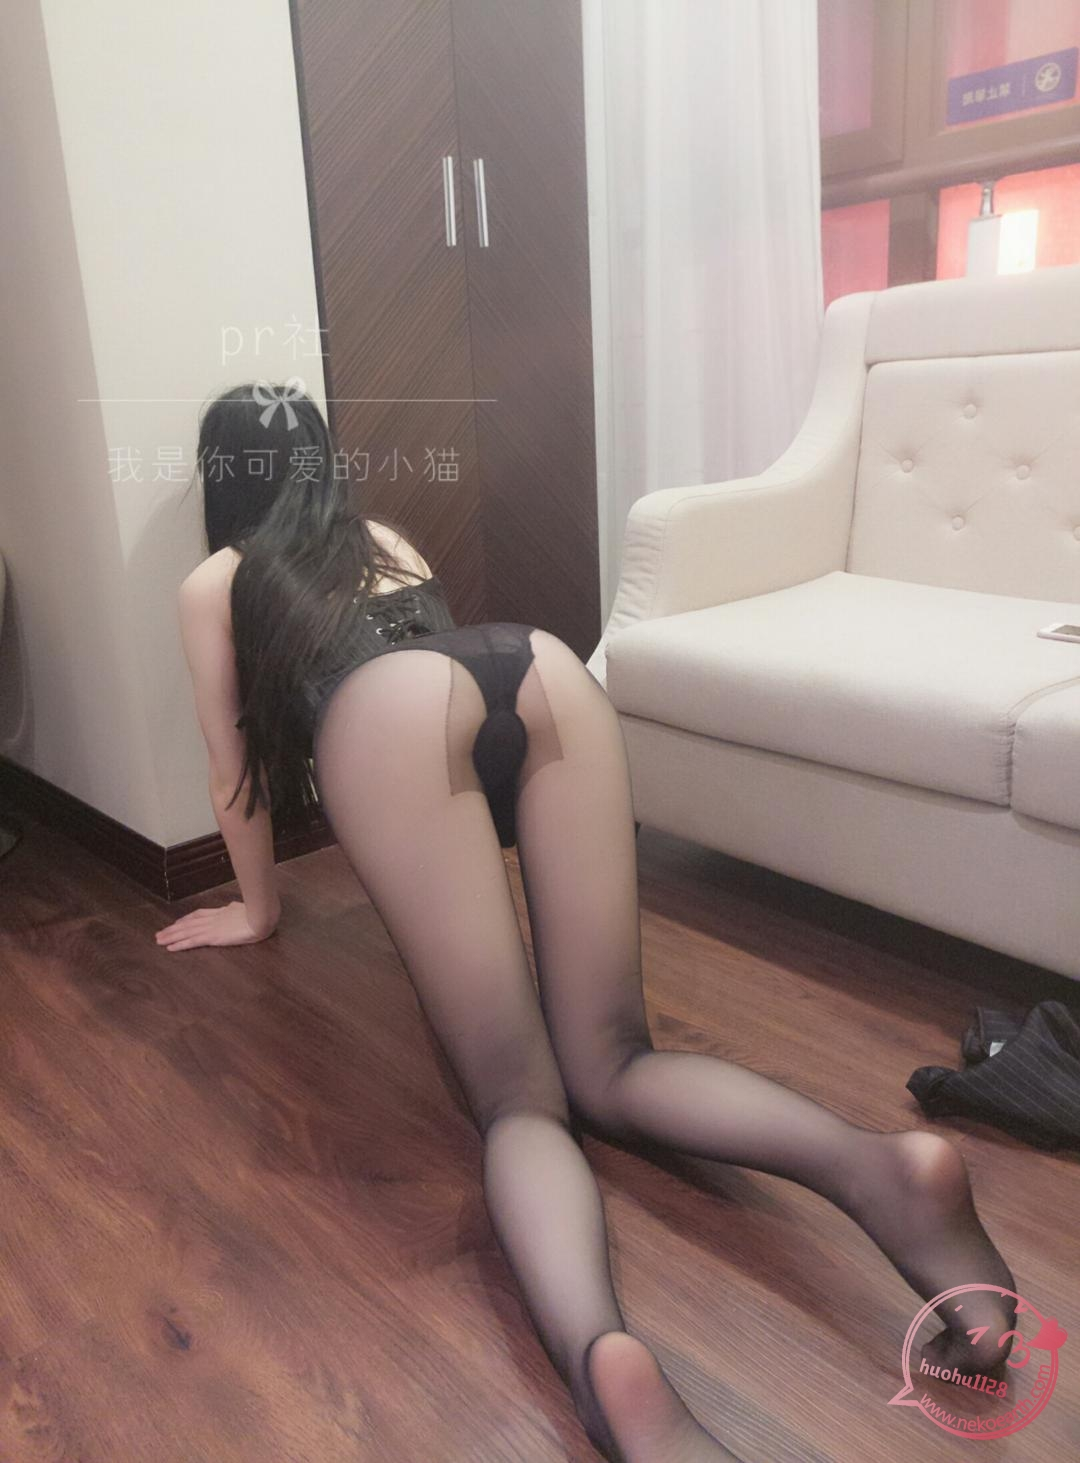 6fgY - Preview: Cute kitten in black stockings (25P)